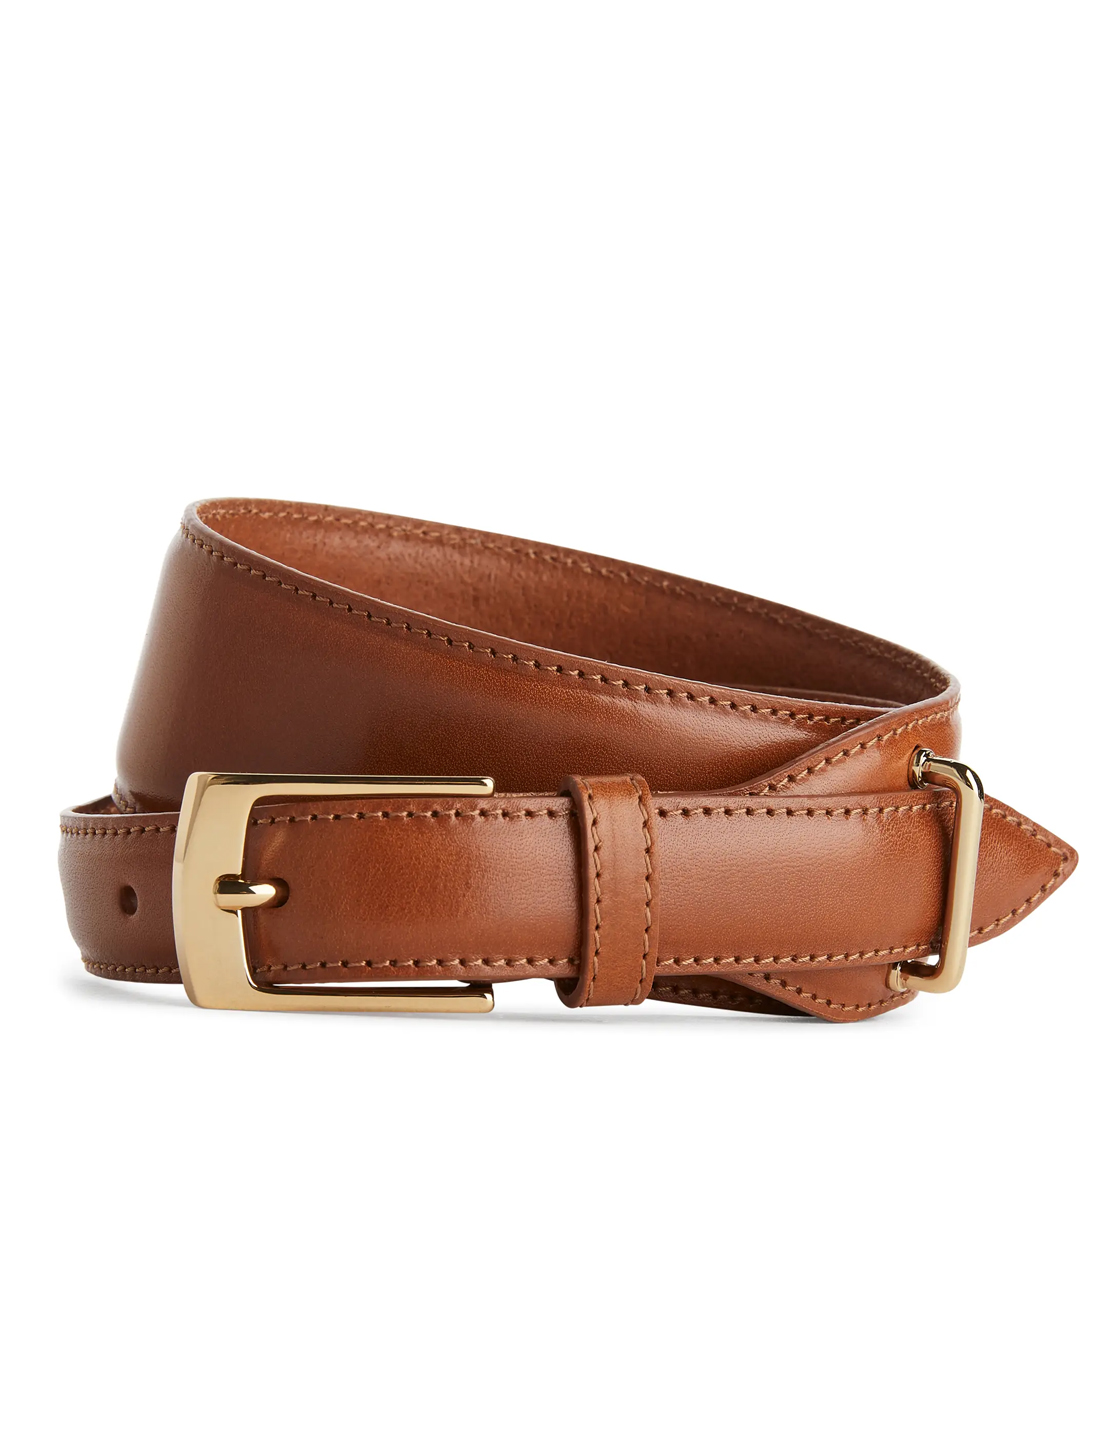 brown and gold leather belt